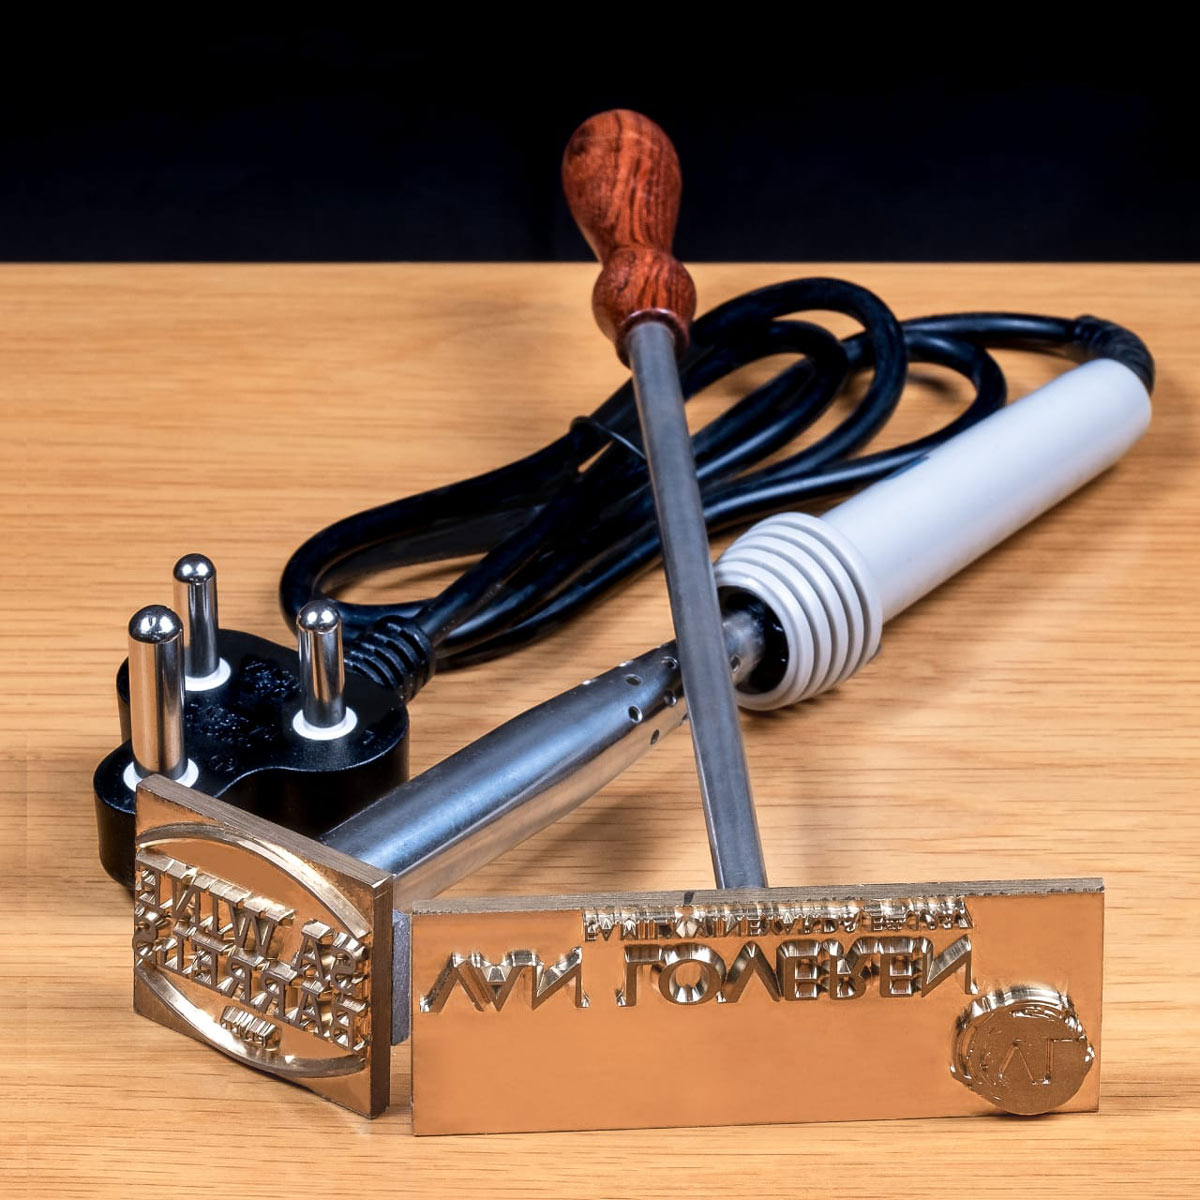 Branding Irons For Wood And Leather Manufactured In South Africa